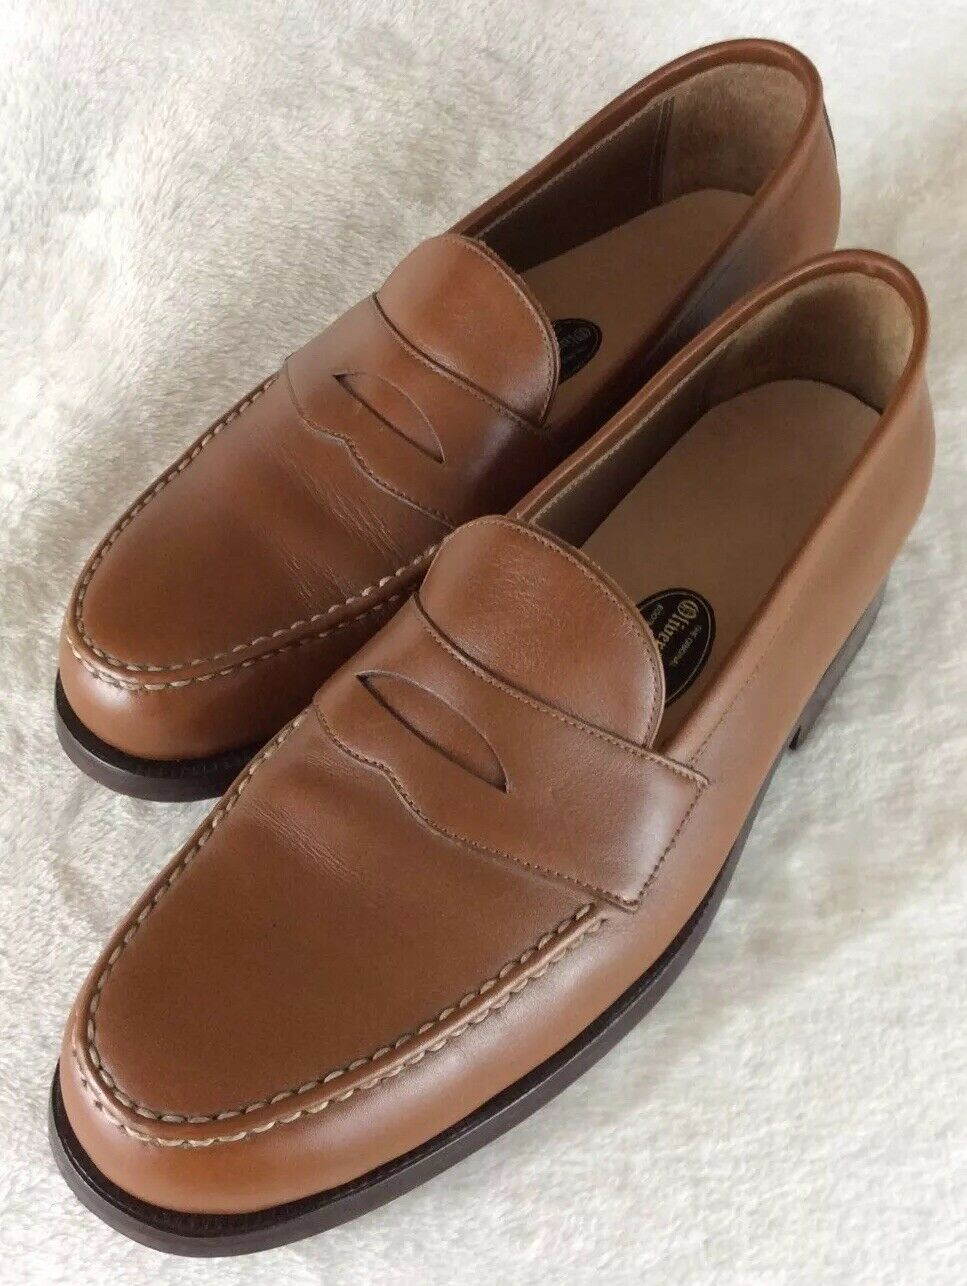 OLIVER MOORE BOOTMAKERS BOOTMAKERS BOOTMAKERS Mens Tan Leather Handmade Penny Loafers shoes 10  Length 6a6c9a